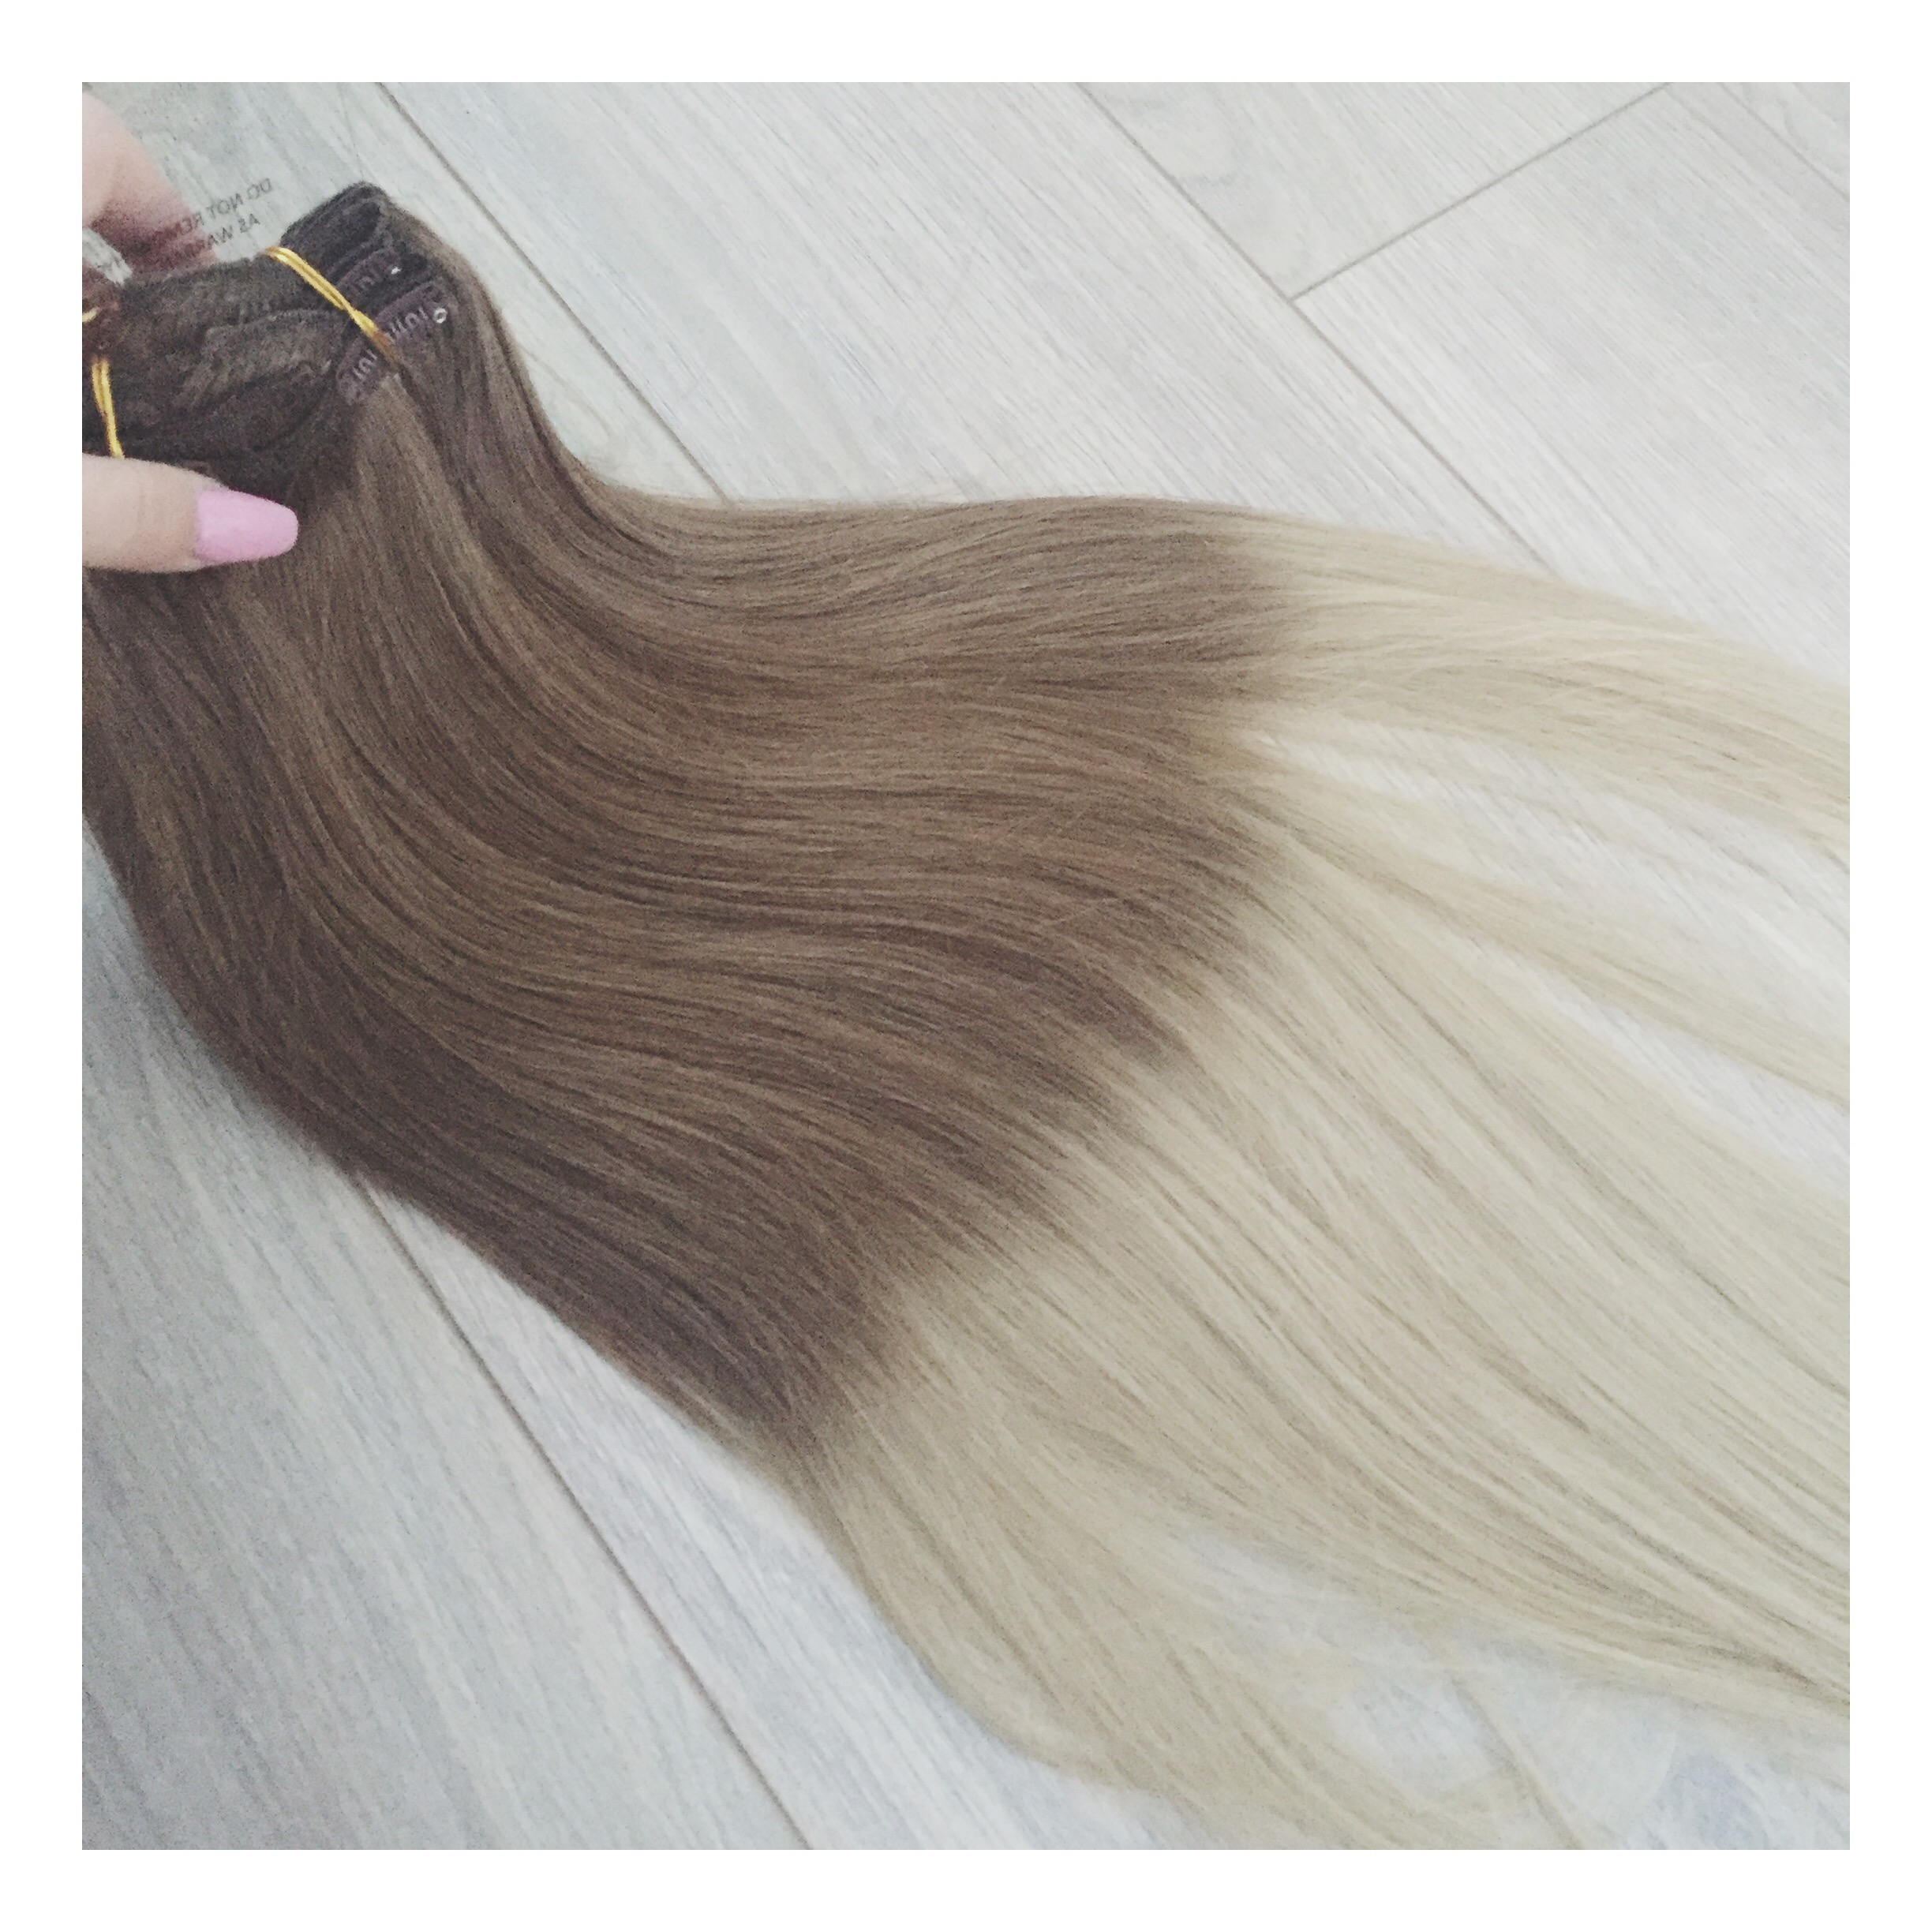 Lush hair extensions nattfashion these extensions are thick from the top to bottom and the ombre blends perfectly with my hair this set came with 10 wefts and although my hair is really pmusecretfo Choice Image